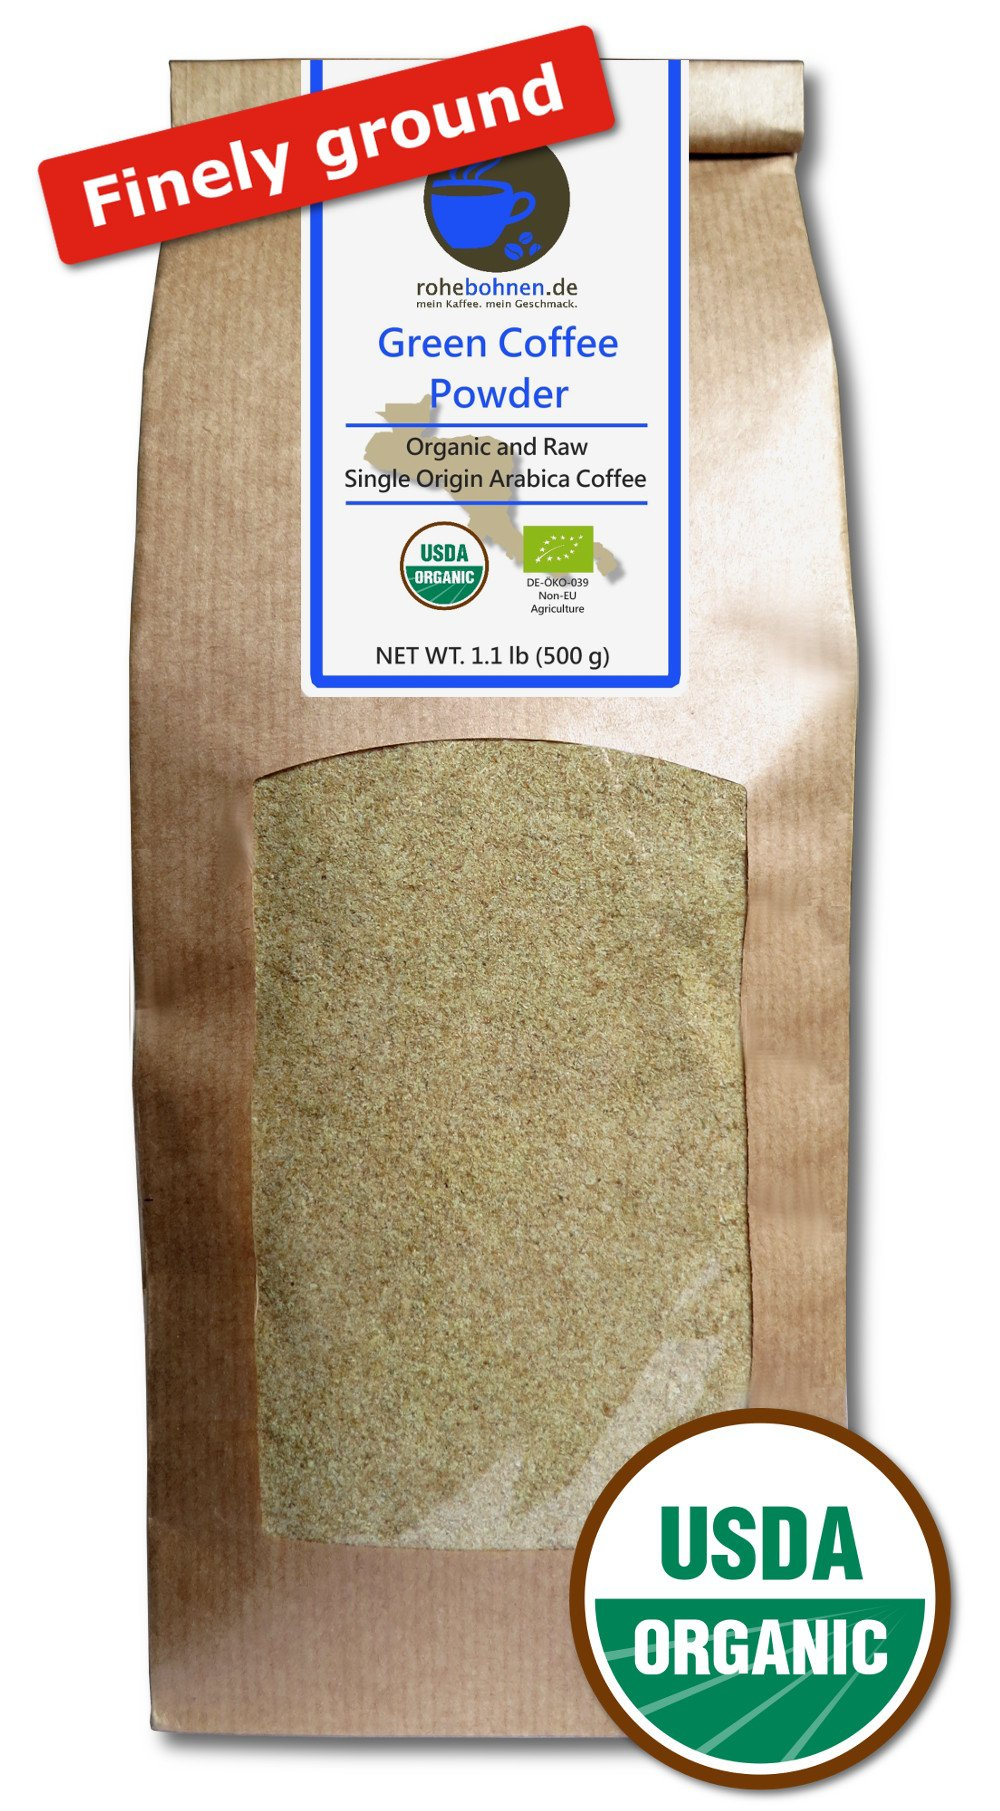 Green Coffee Powder organic, 100% pure and natural (finely ground, 500g) by Rohebohnen